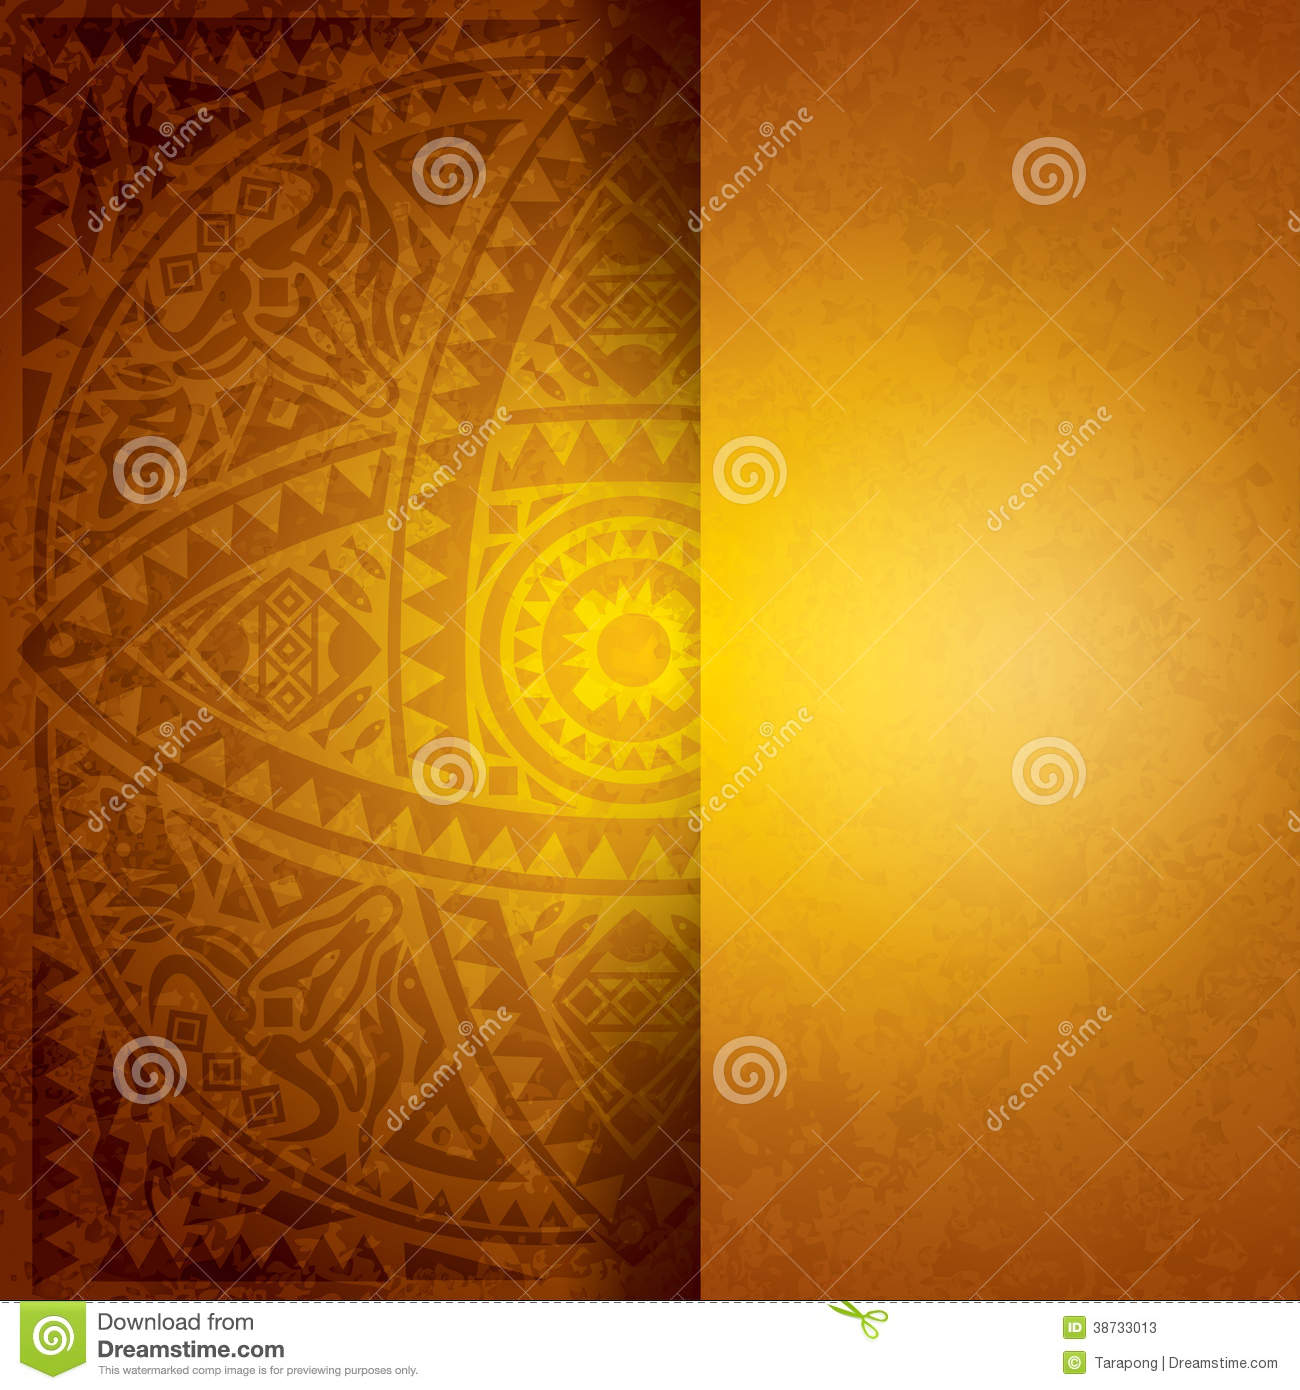 Background Design For Book Cover : Yellow african background design stock vector